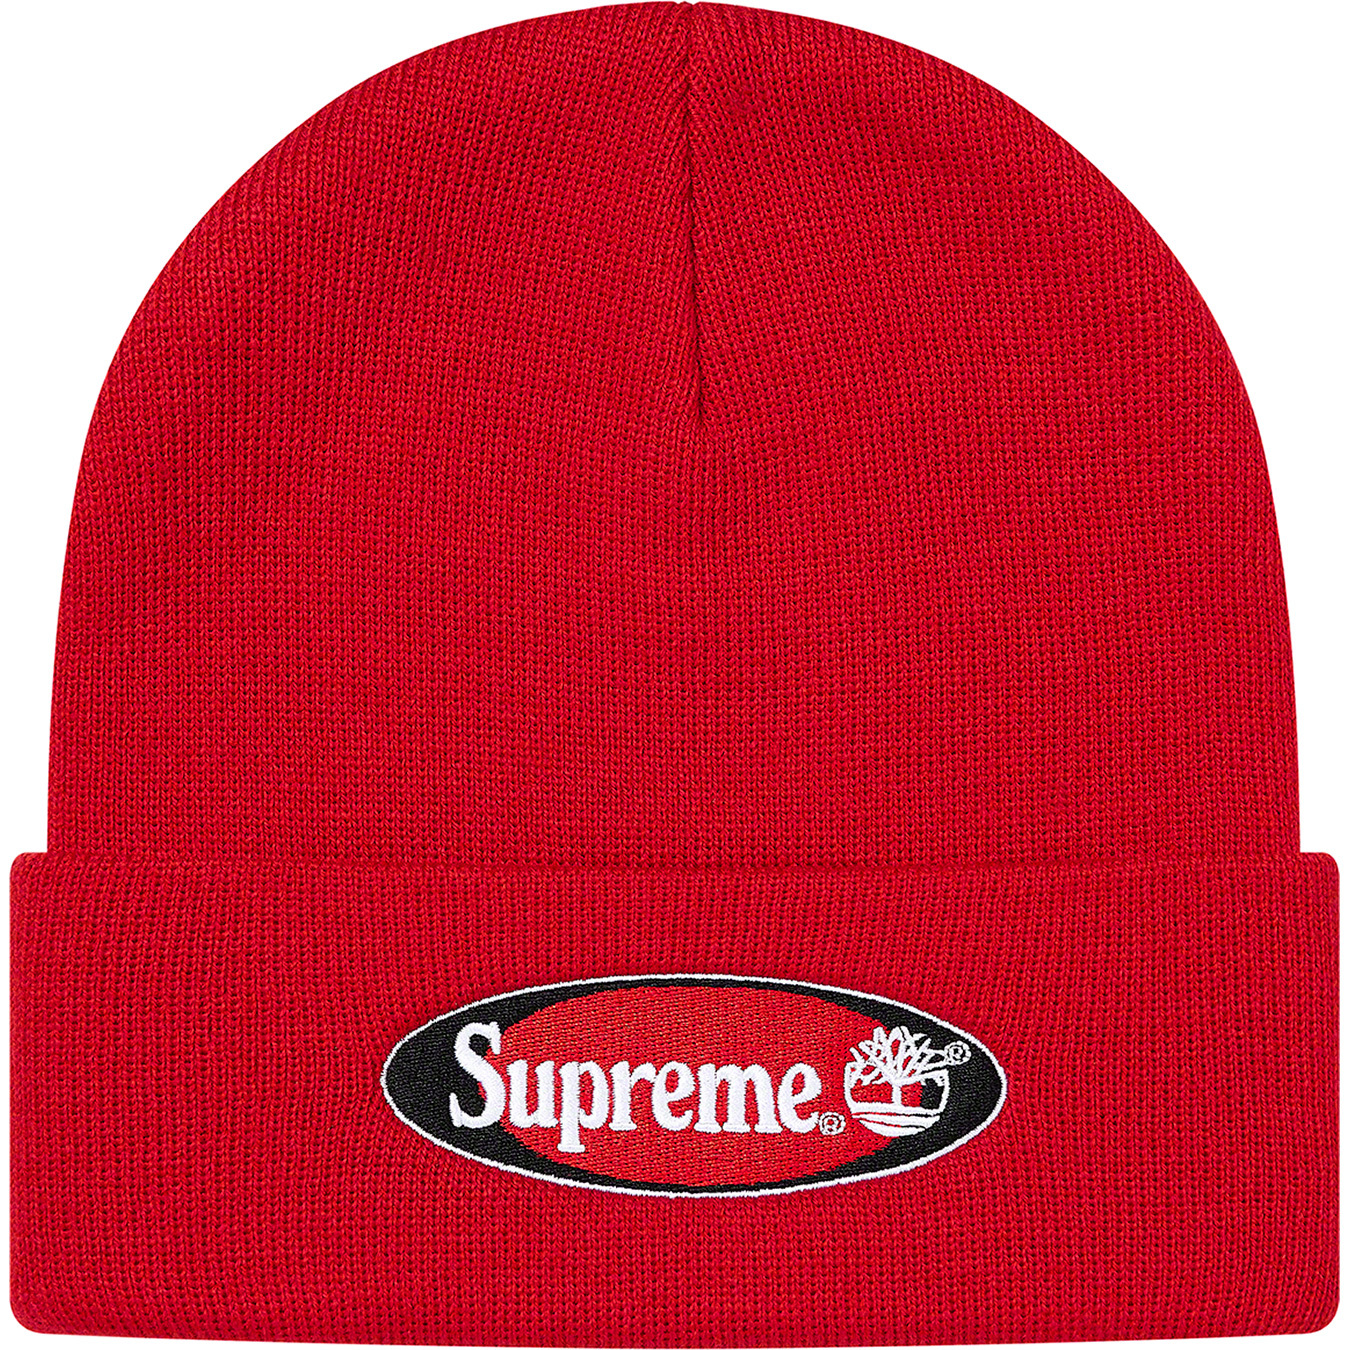 supreme-timberland-21ss-collaboration-release-20210515-benie